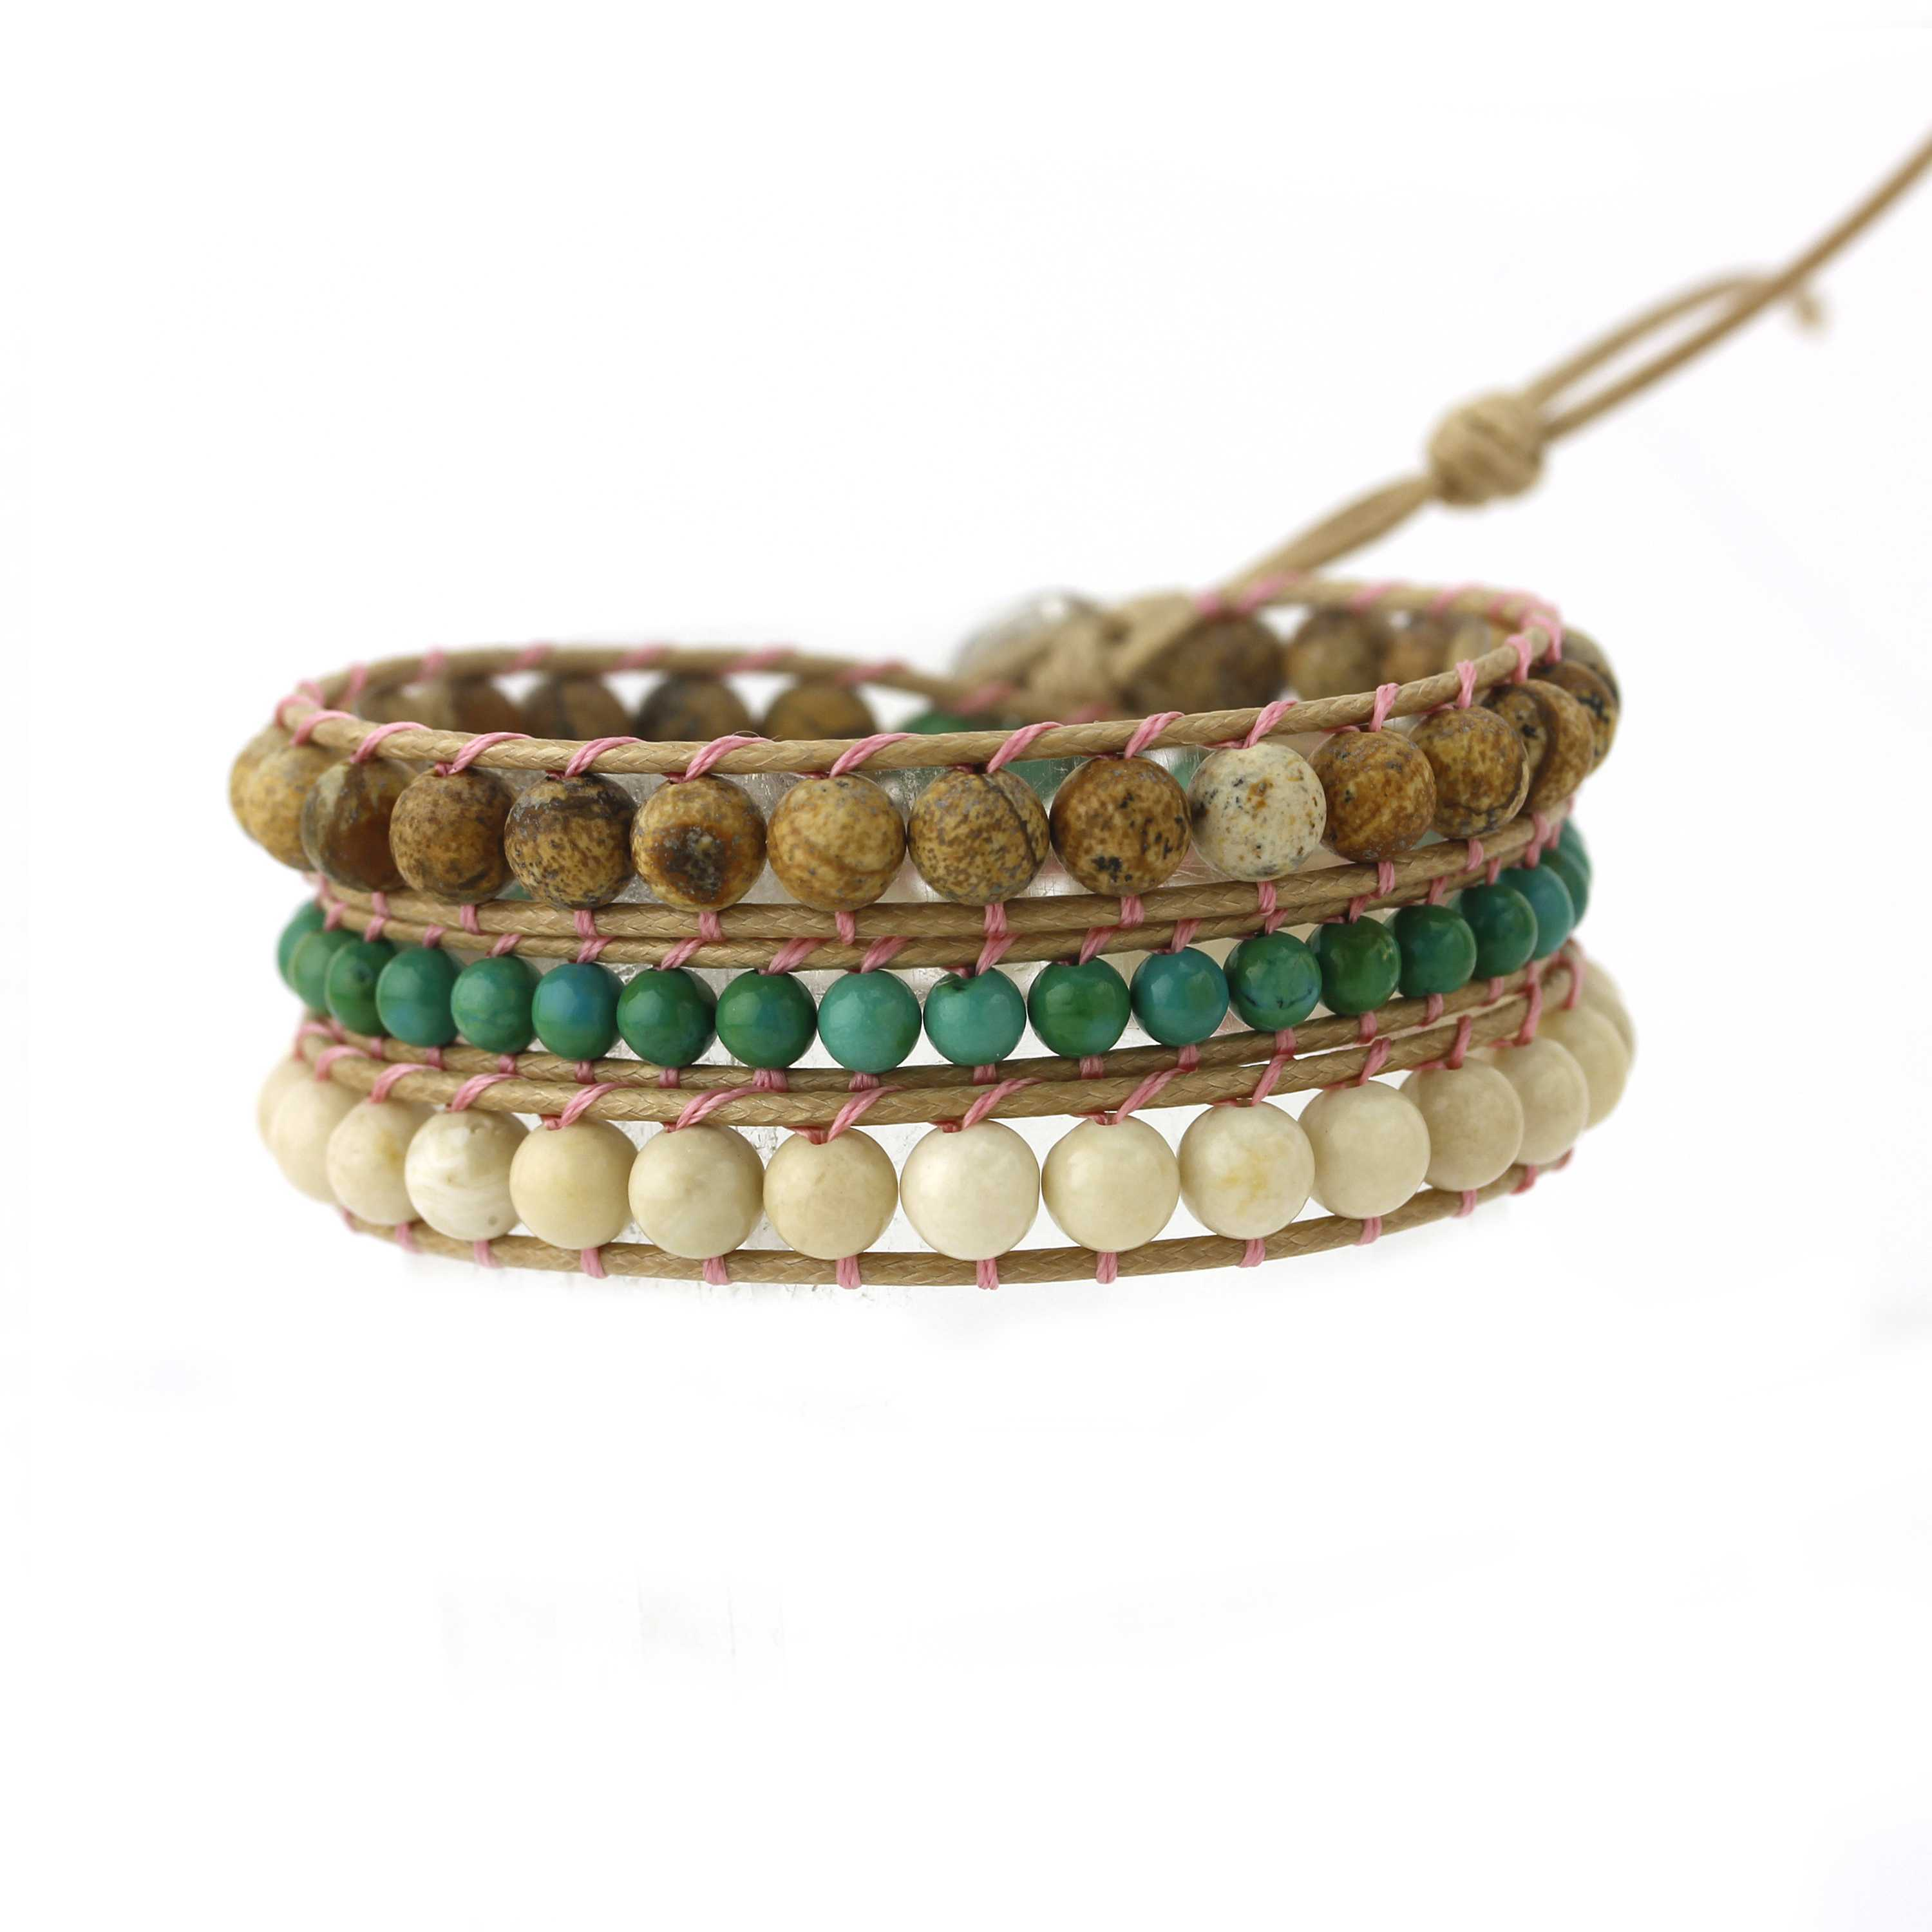 TTT Jewelry Natural Stone Beads Wrap Handmade Bracelet with Stainless Curved Clasp 3 Wraps image8